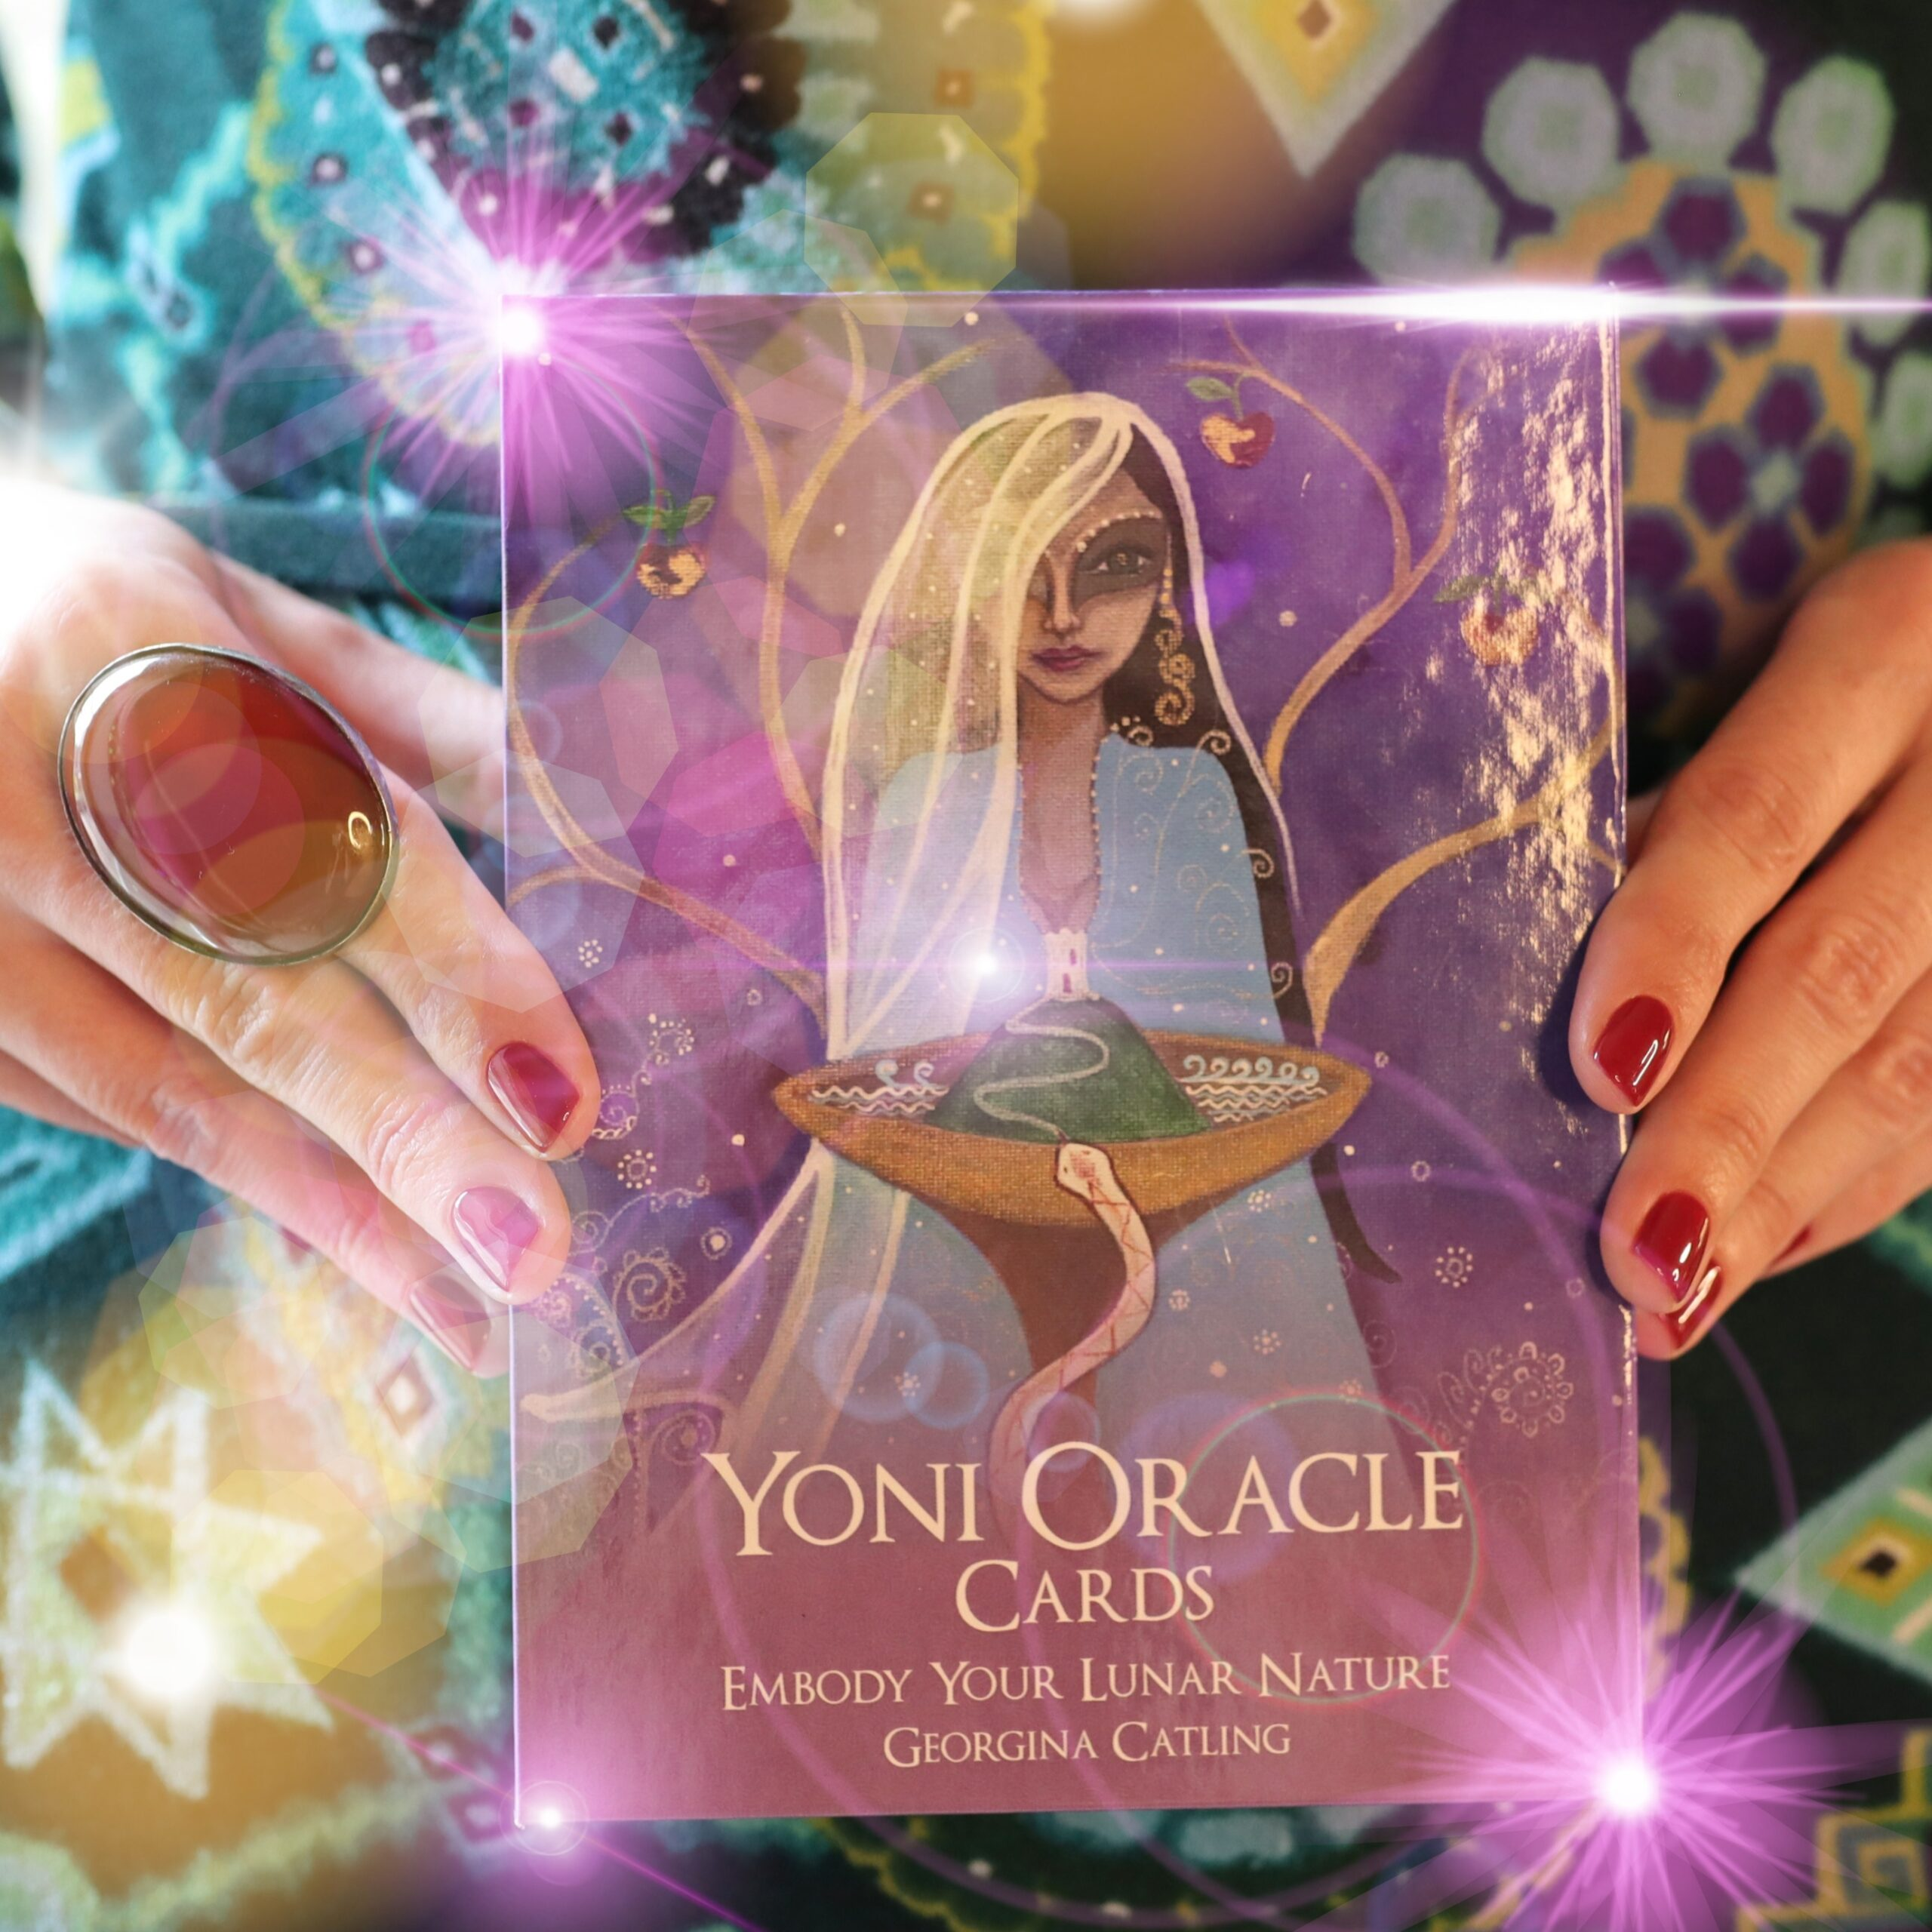 Yoni Oracle Cards